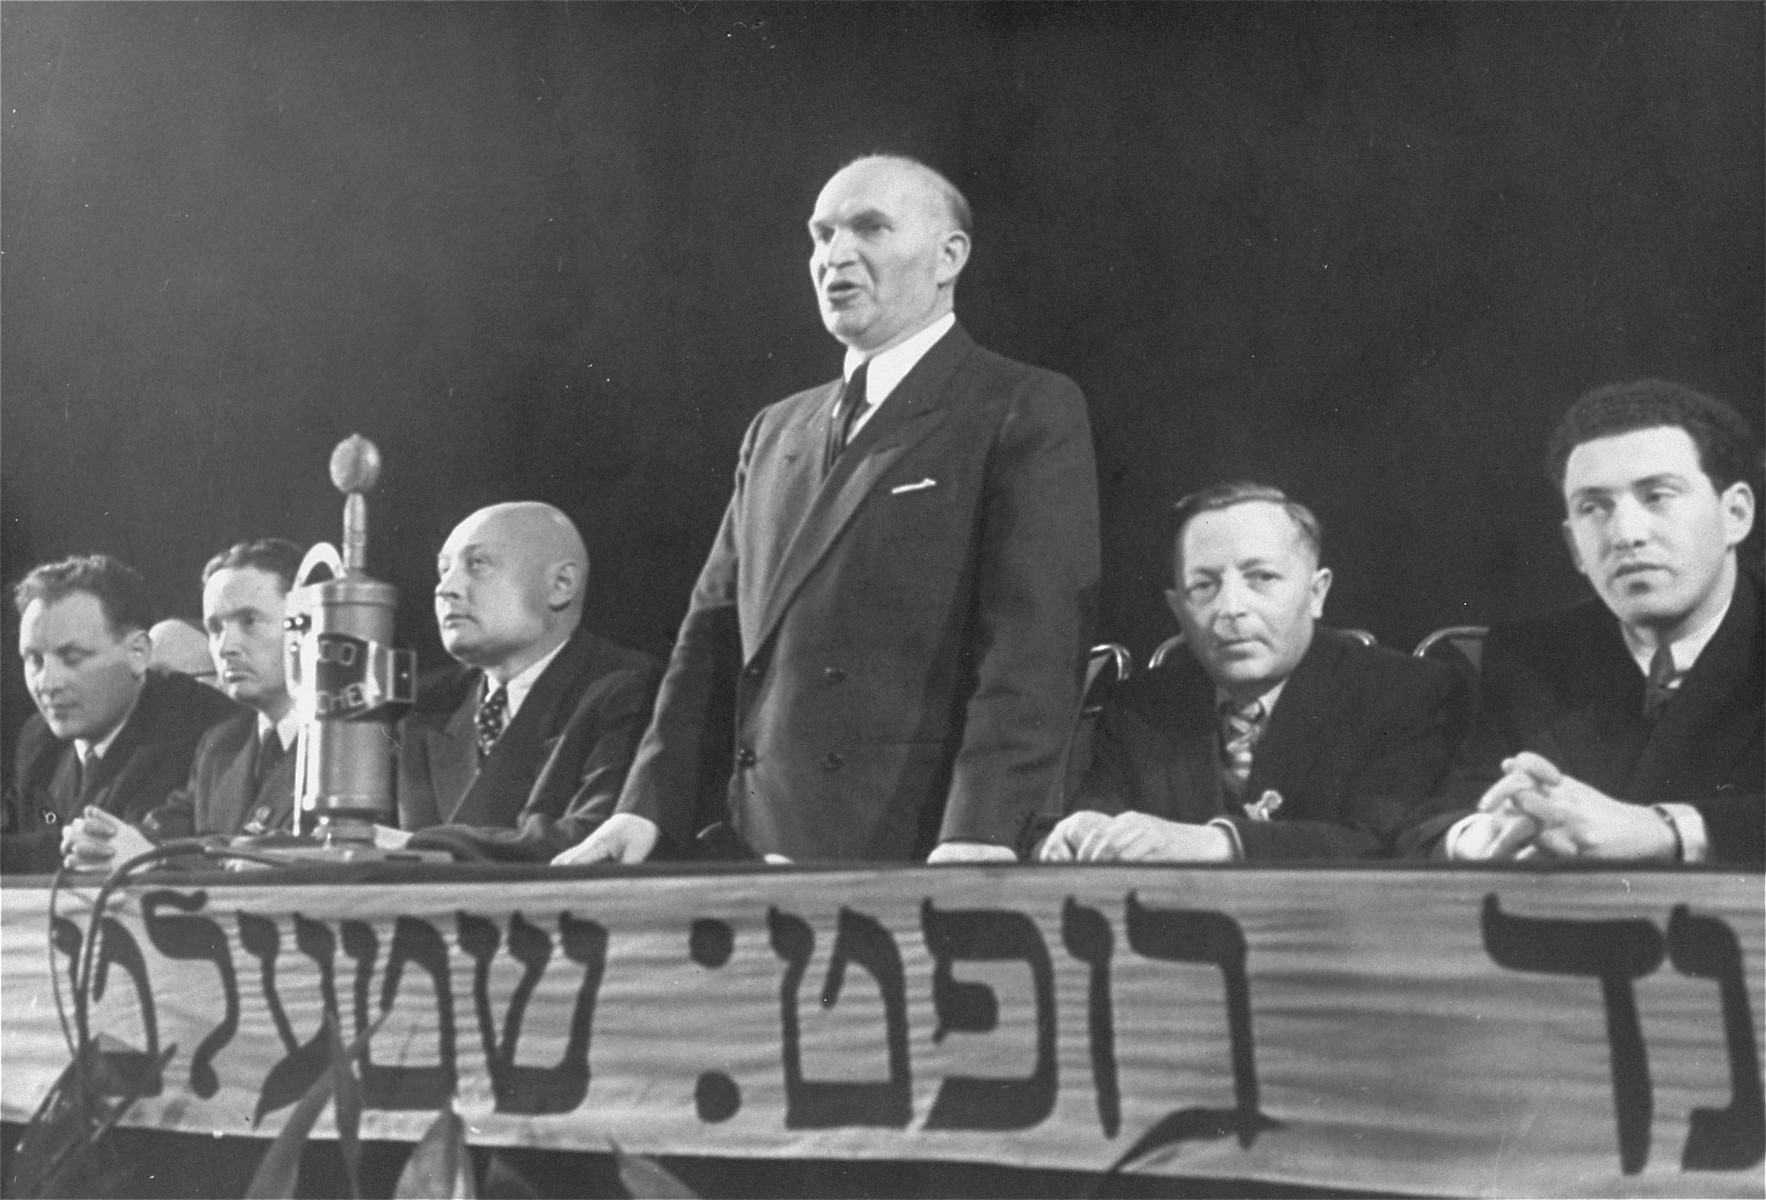 David Treger, chairman of the Central Committee of Liberated Jews in the U.S. Zone of Germany, addresses a post-war Zionist conference in Munich.